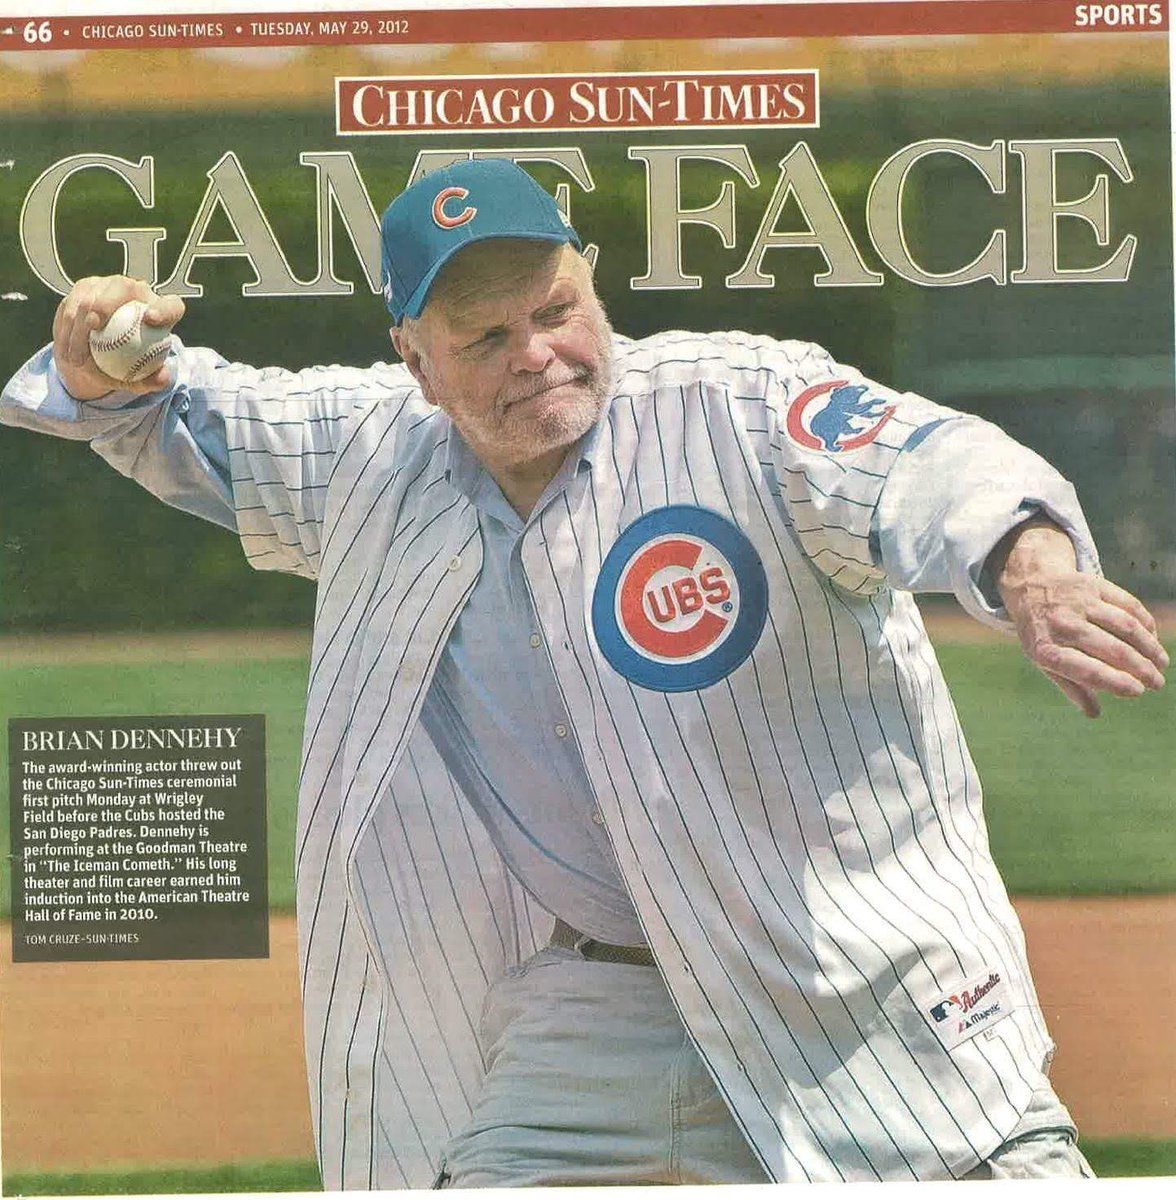 8 years ago today I actually had to be convinced to attend this game. How close I was  to missing something magical. #briandennehy #Chicago #cubbiespic.twitter.com/DkzG1TZWth